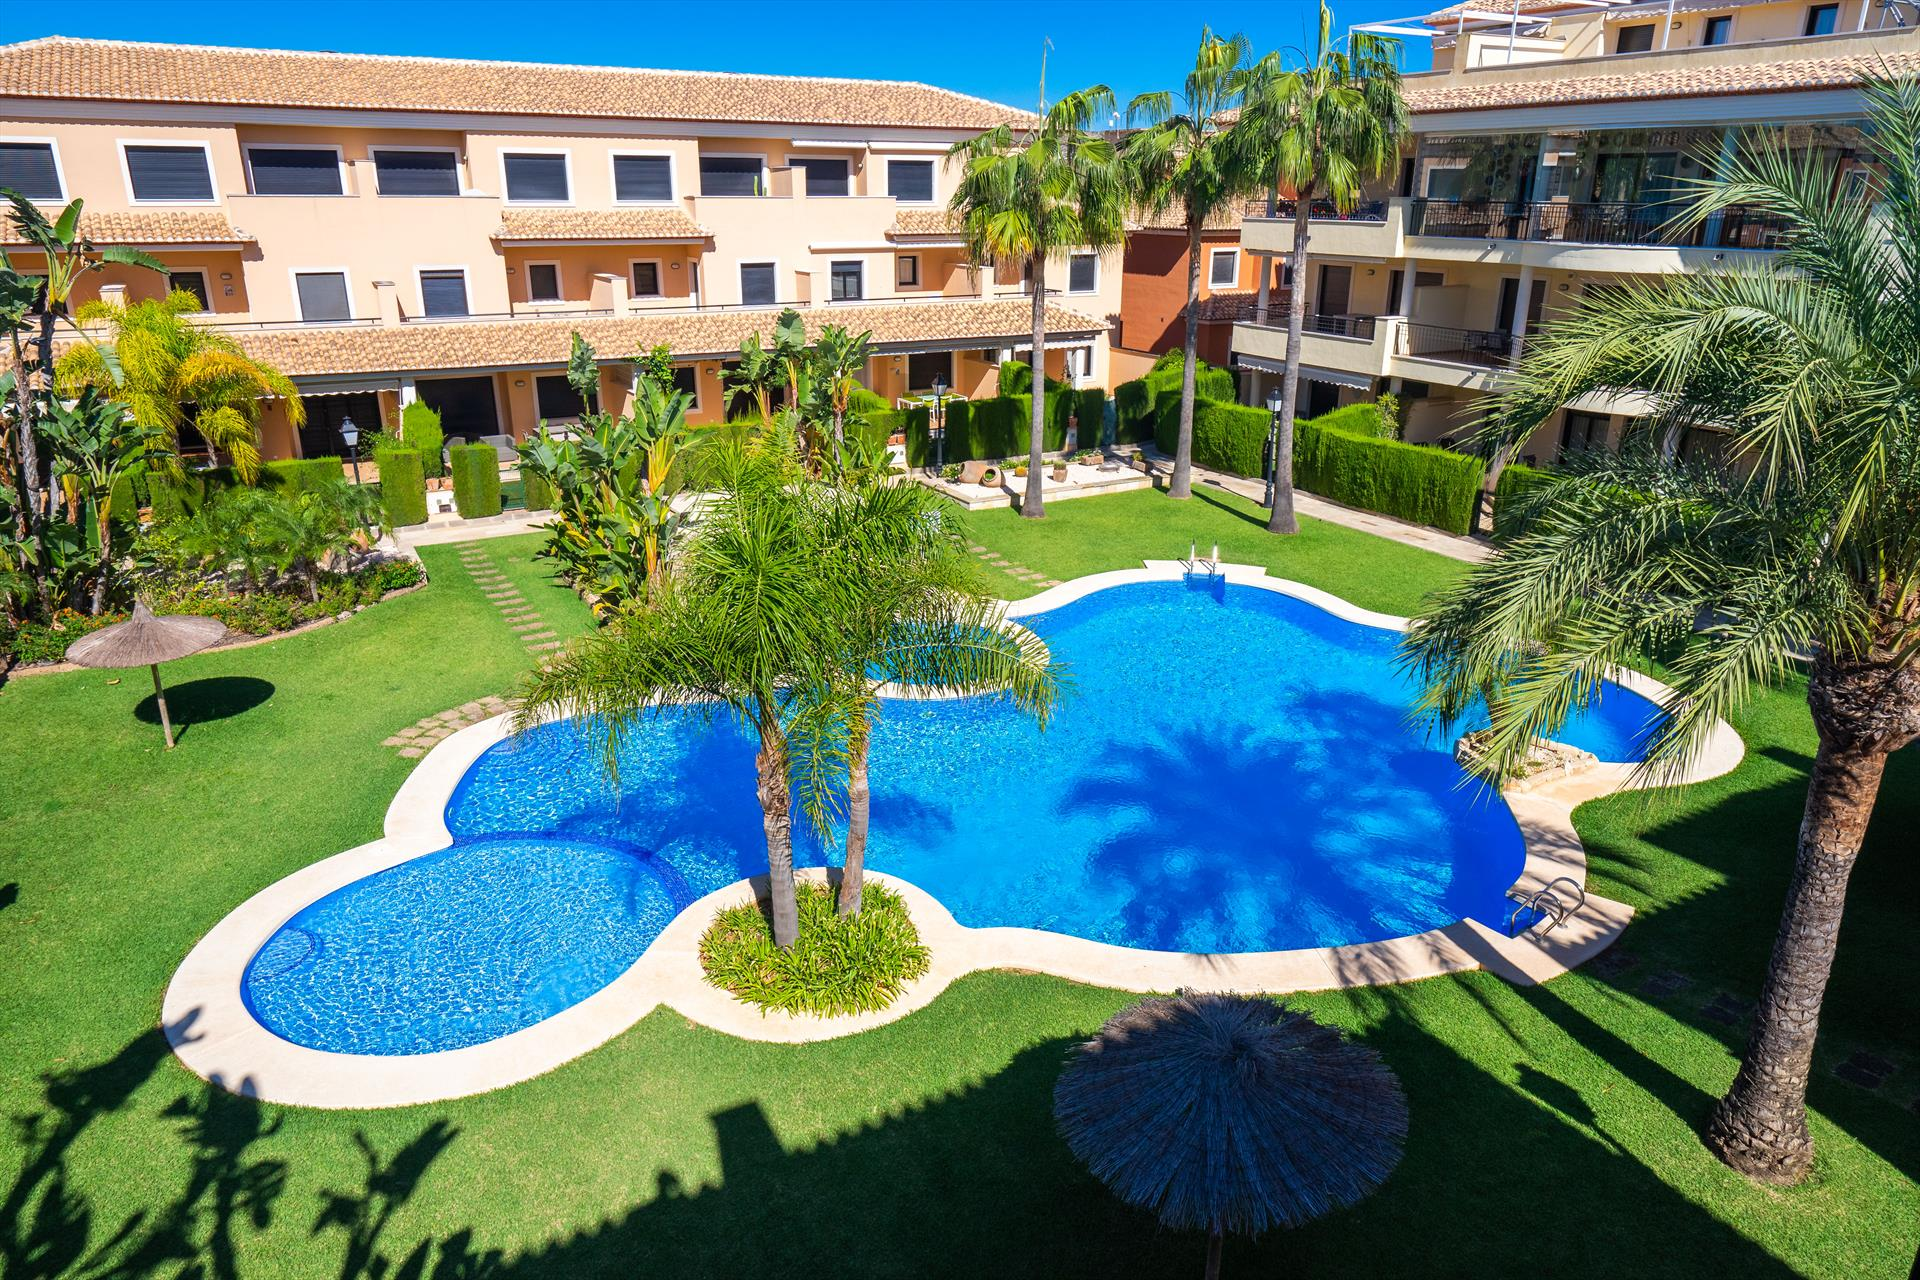 Jardines de Niza 6 pax, Wonderful and cheerful apartment in Javea, on the Costa Blanca, Spain  with communal pool for 6 persons...